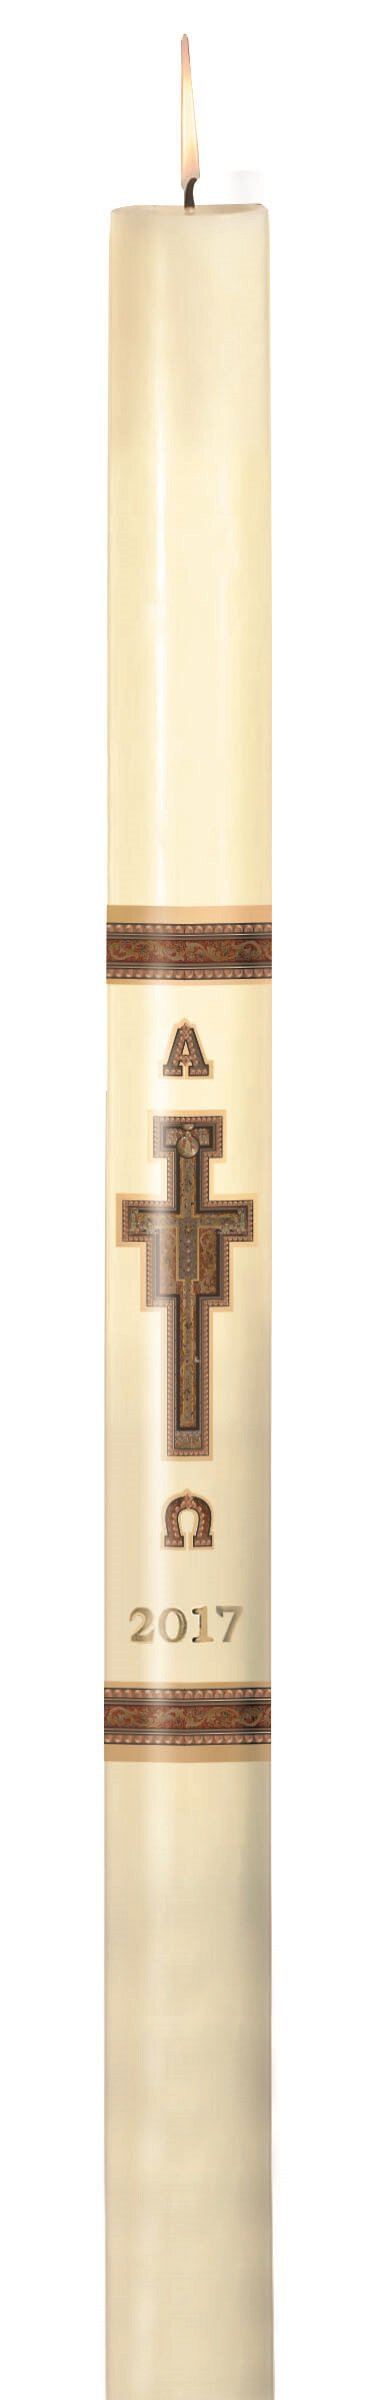 No 8 San Damiano Paschal Candle